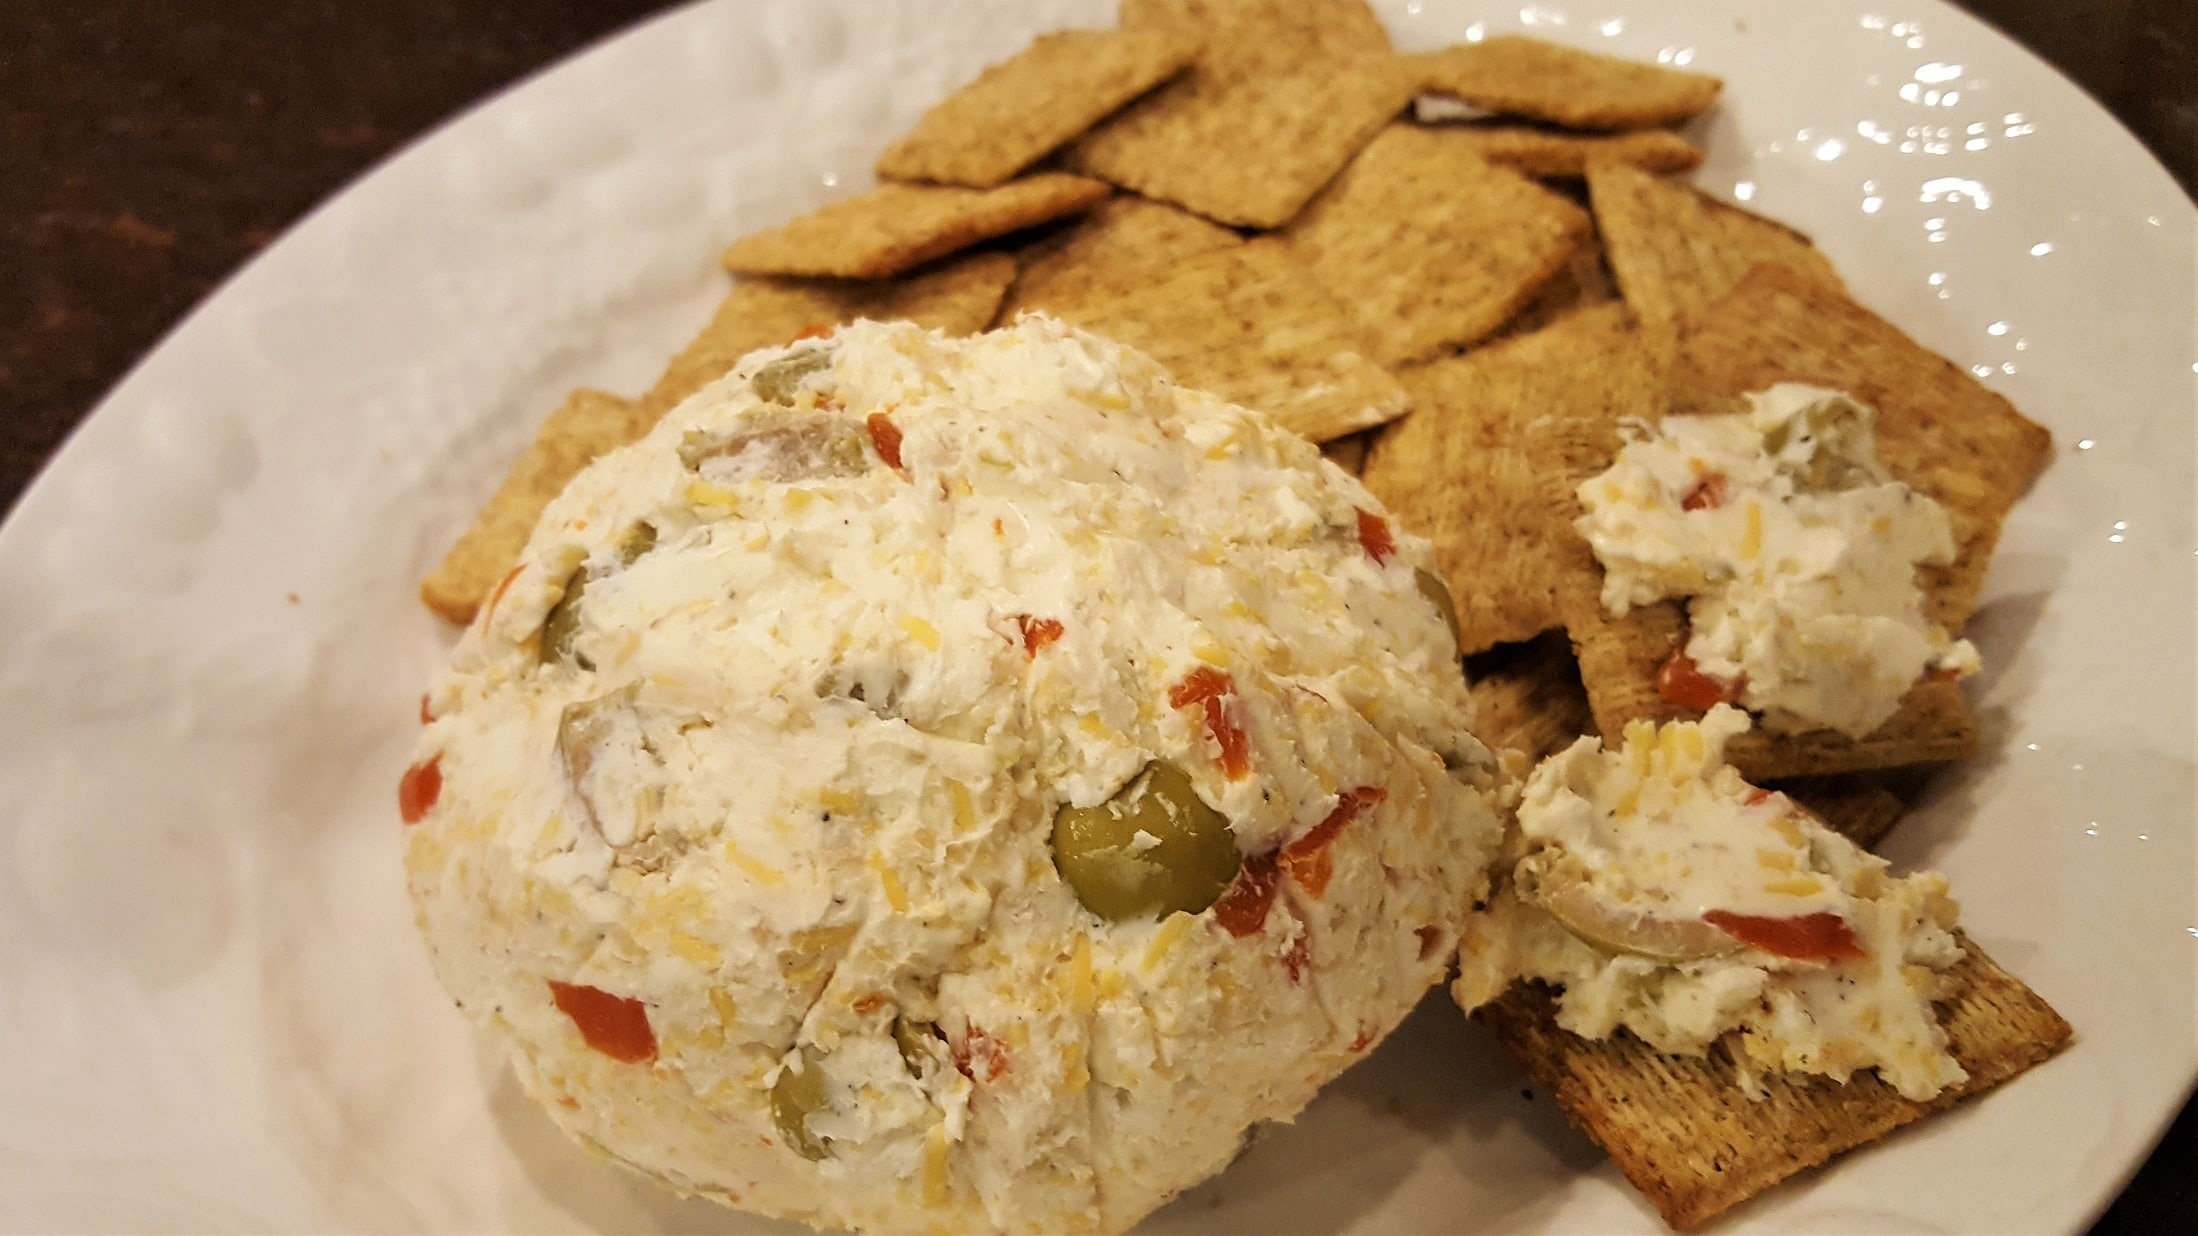 Pimento Olive Cheese Ball ready to serve - Dining in with Danielle